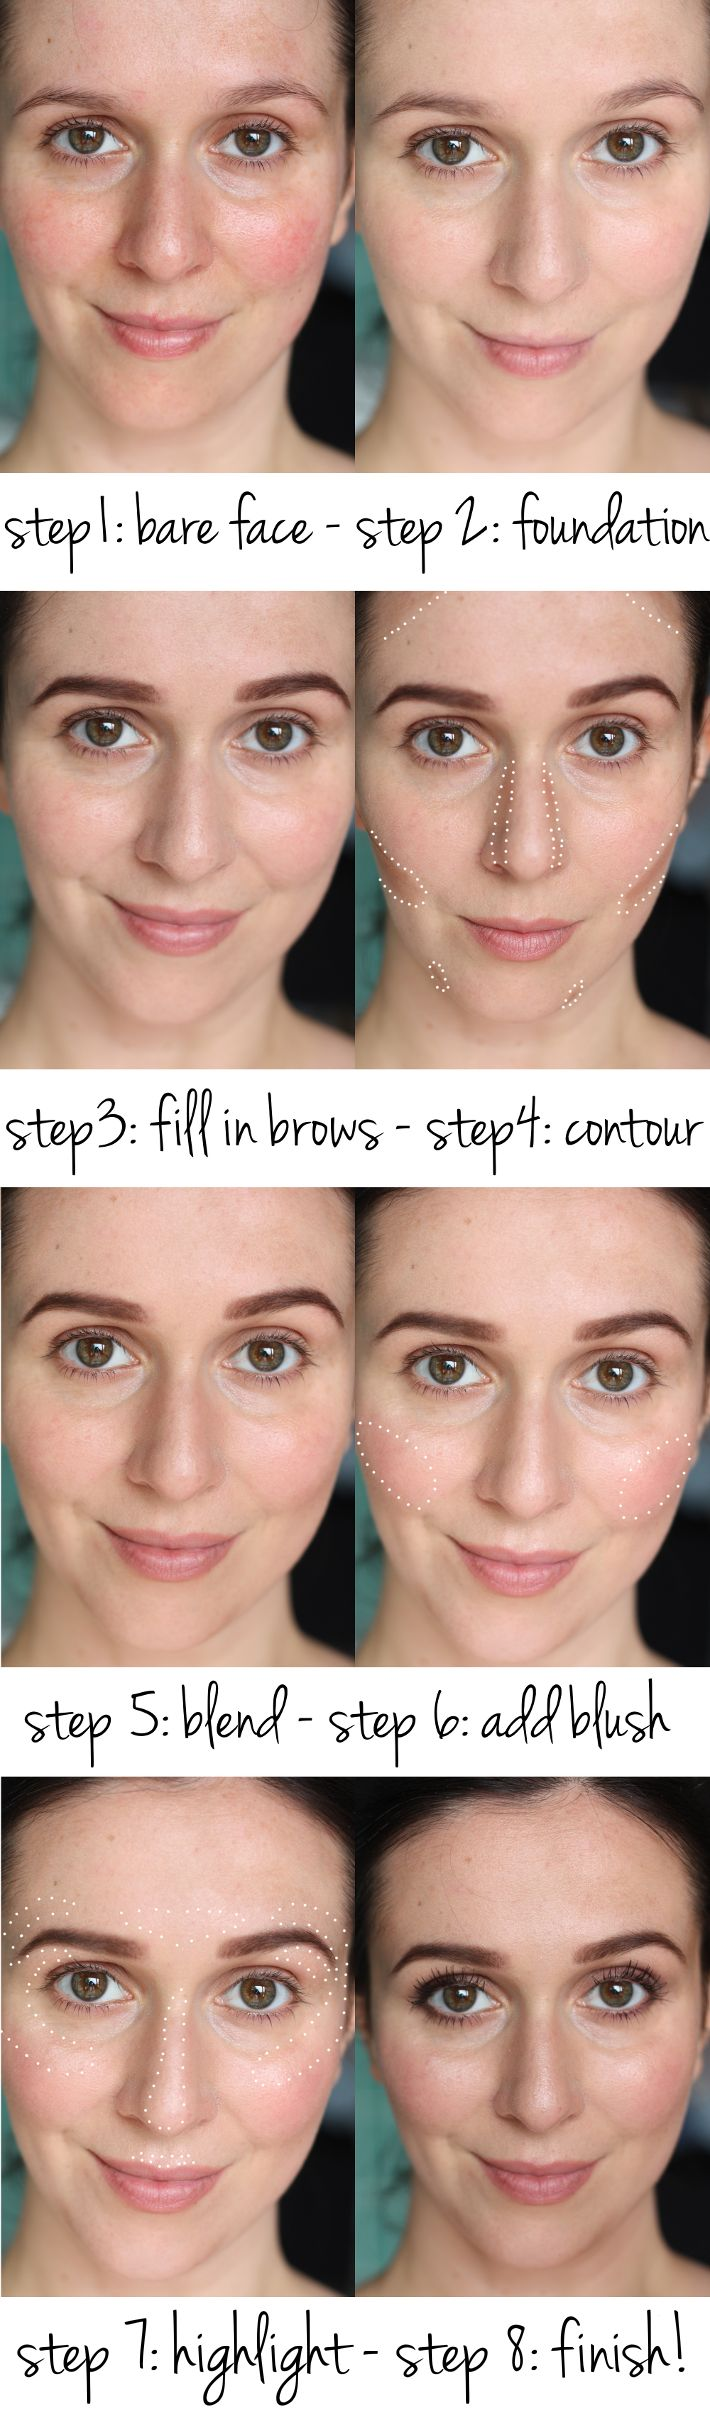 Review and Tutorial: Contouring for Beginners with Sleek Face Form in Light